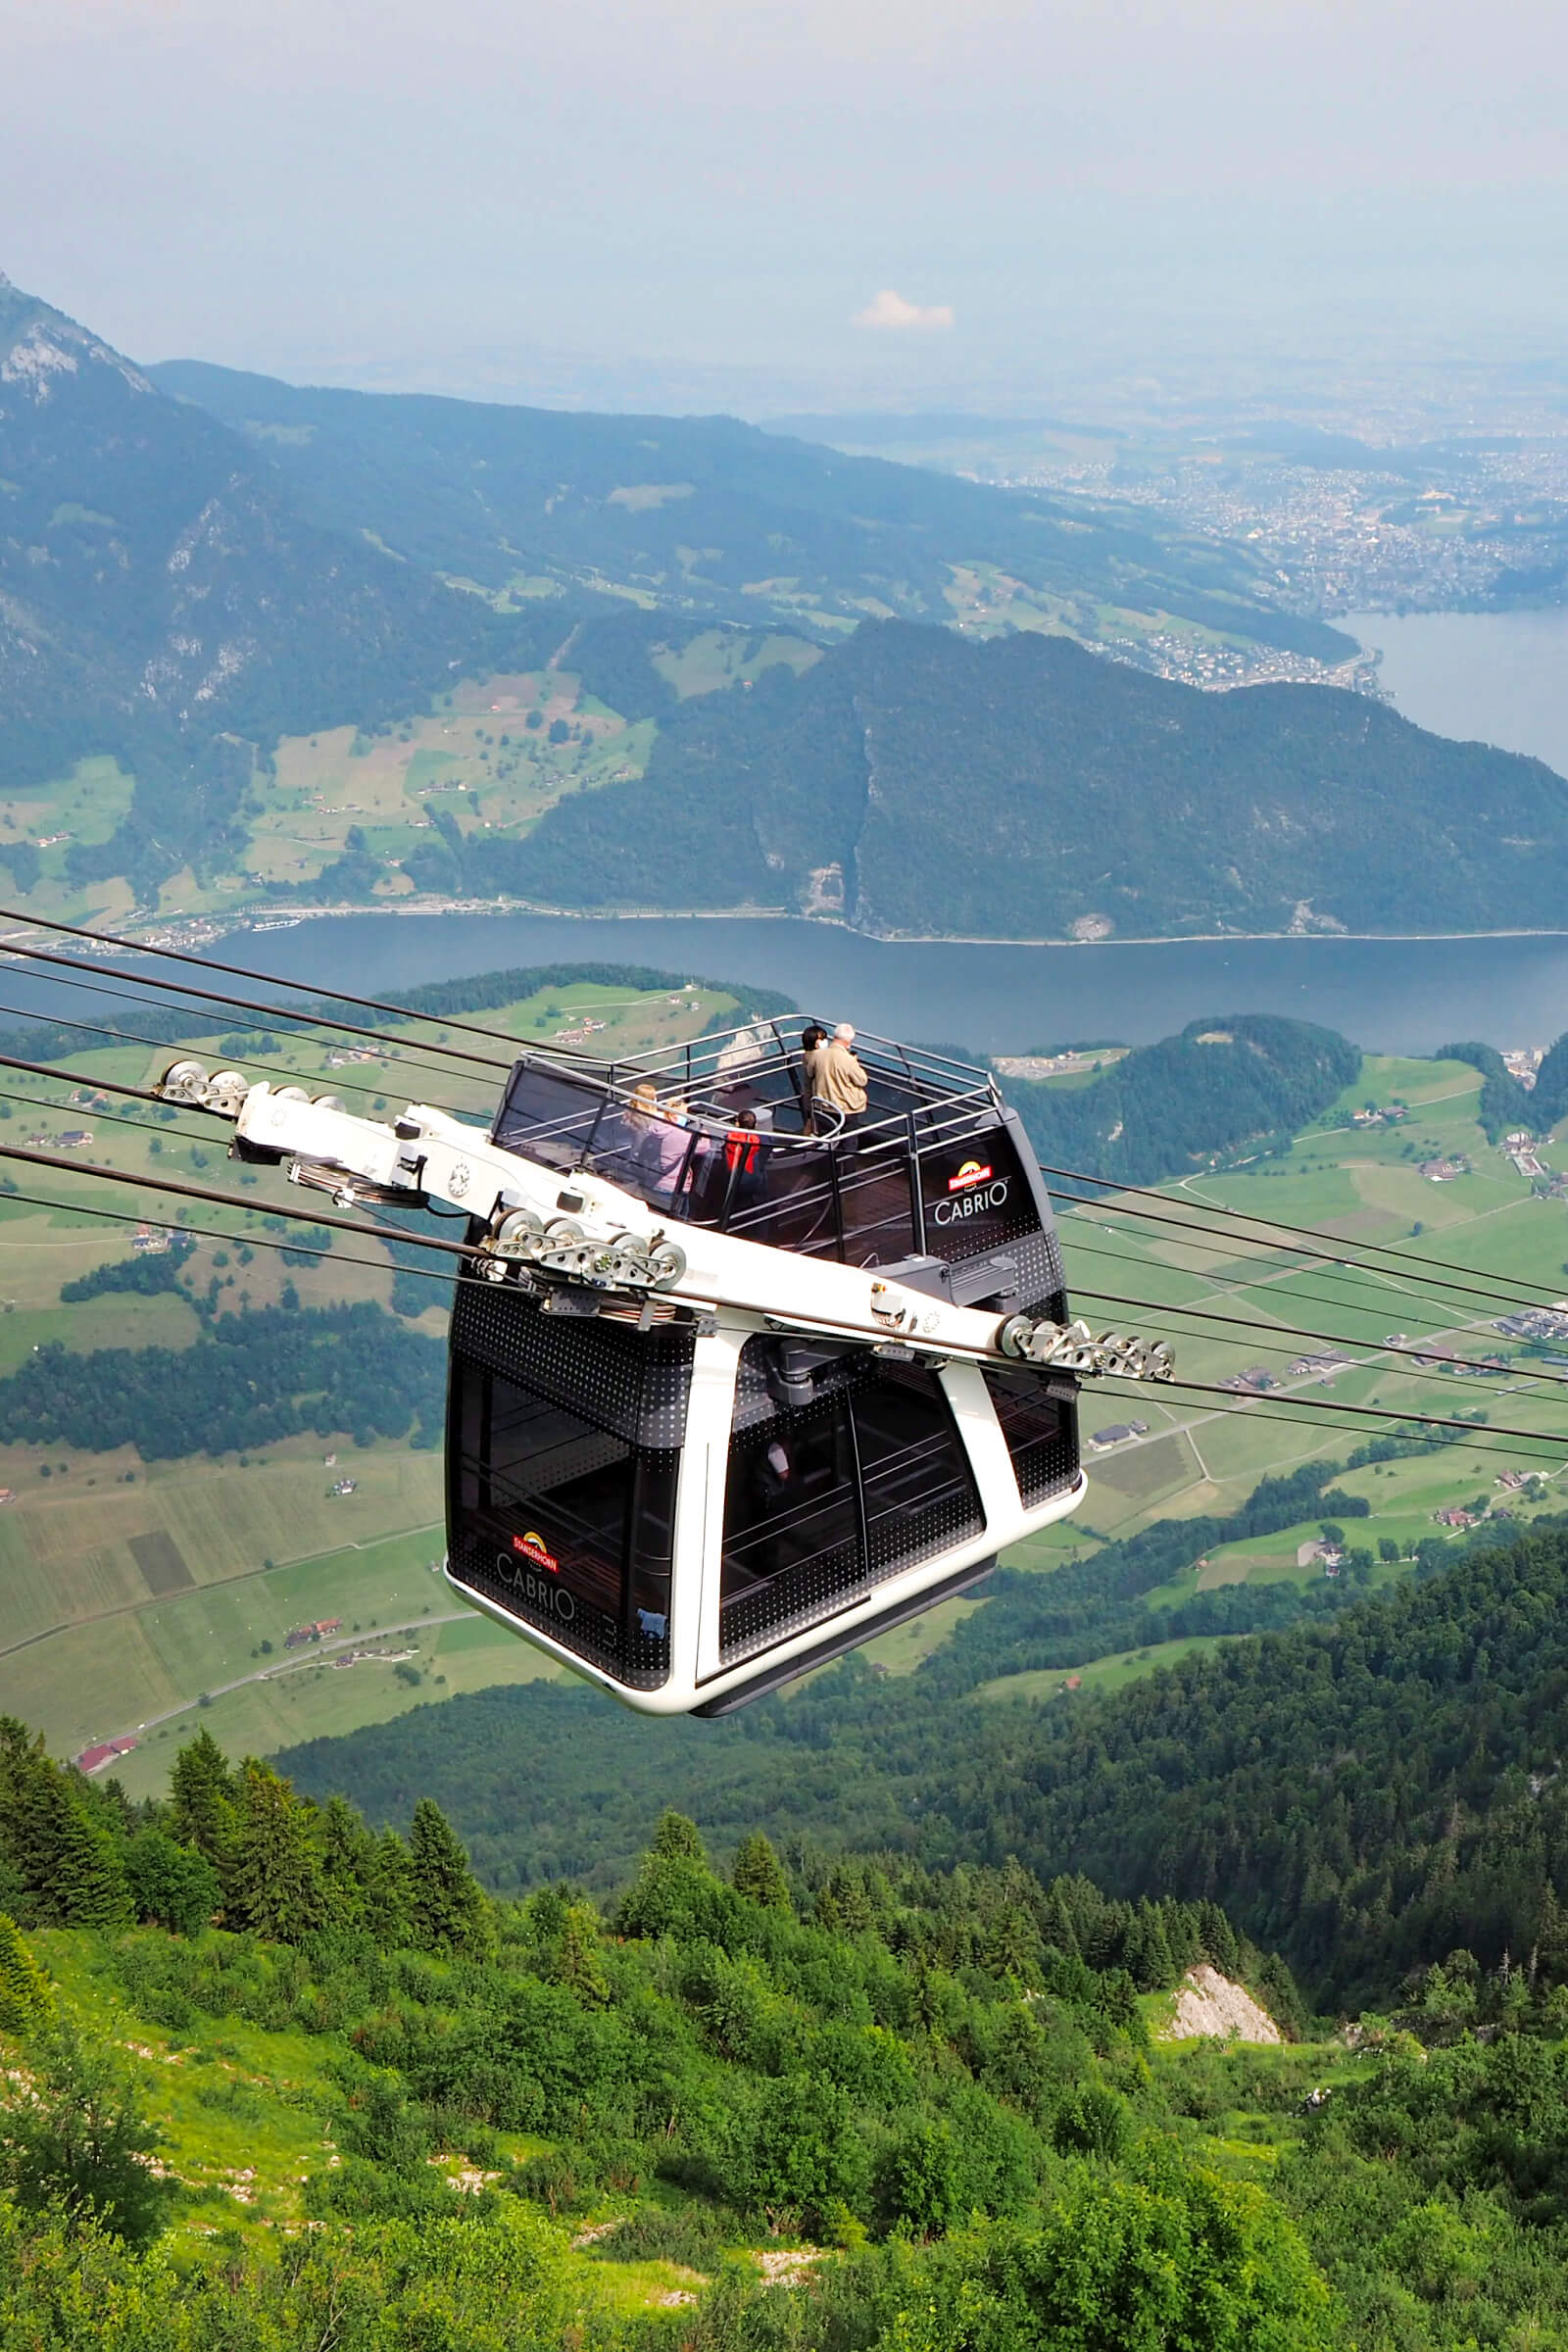 Stanserhorn CabriO cable car with open rooftop